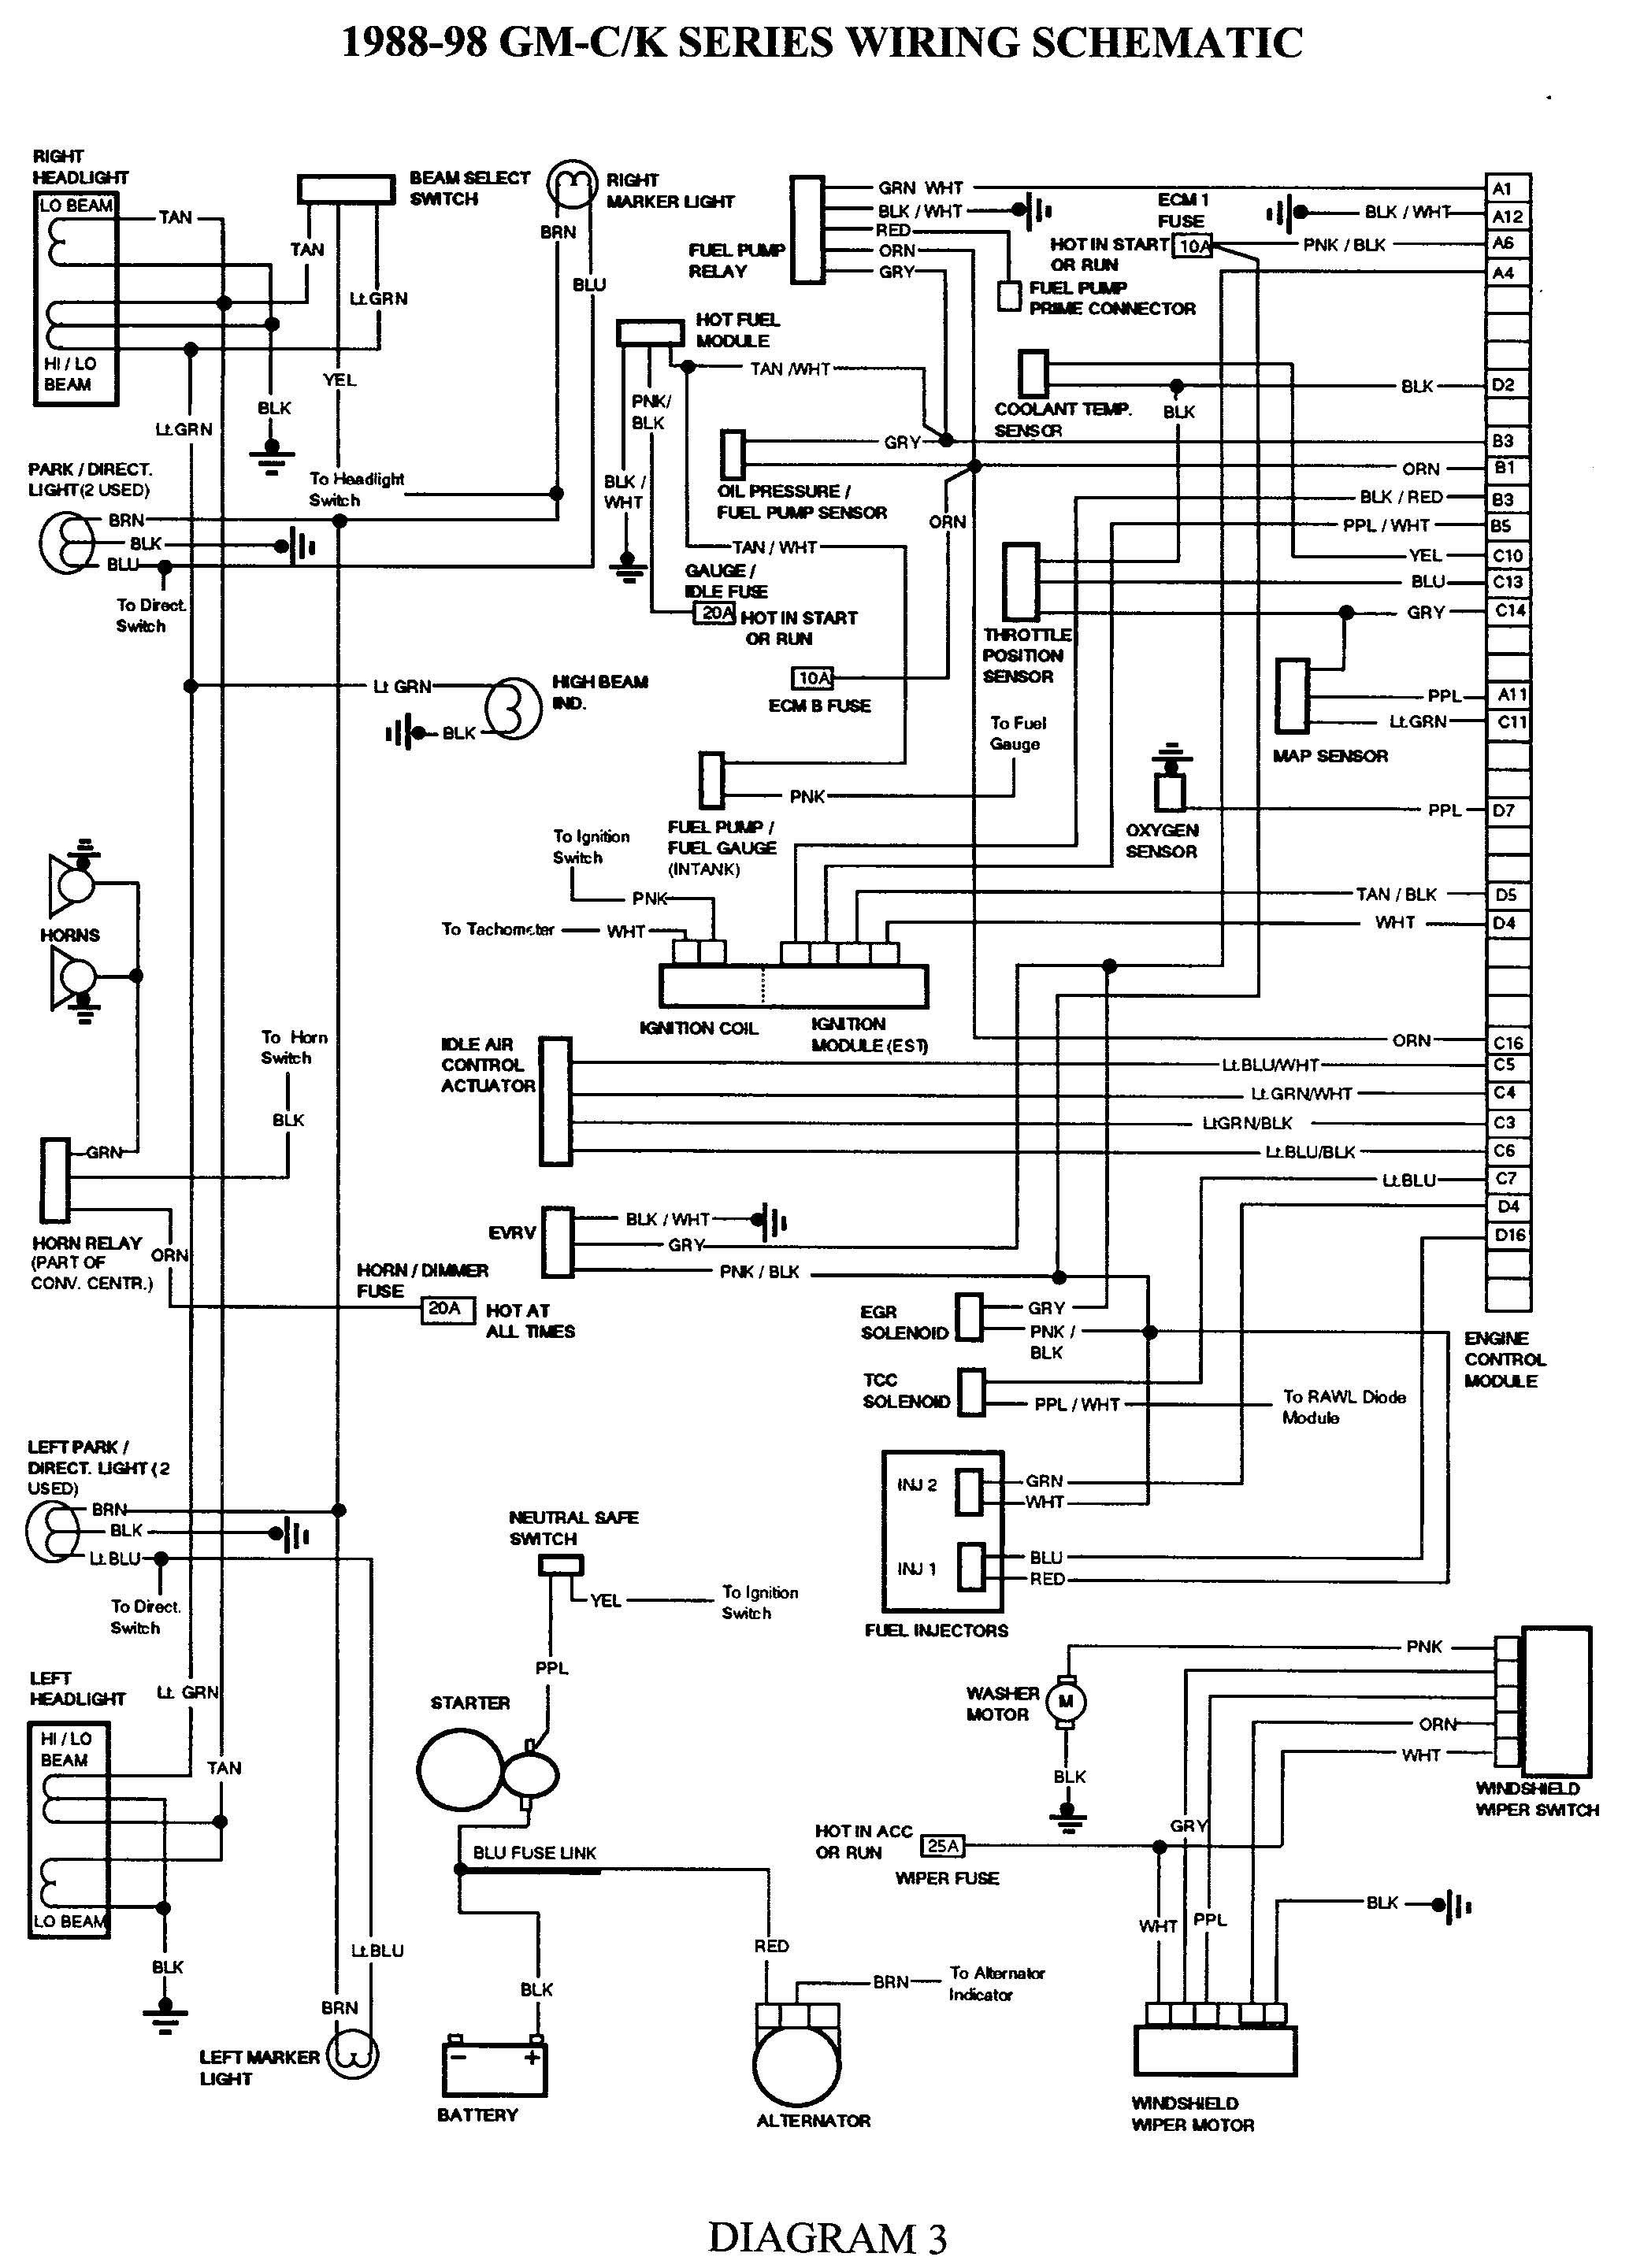 1972 Chevy Truck Ignition Switch Wiring Diagram : chevy, truck, ignition, switch, wiring, diagram, DIAGRAM], Truck, Wiring, Diagram, Version, Quality, PLAGUEDIAGRAM.LANCIAECOCHIC.IT